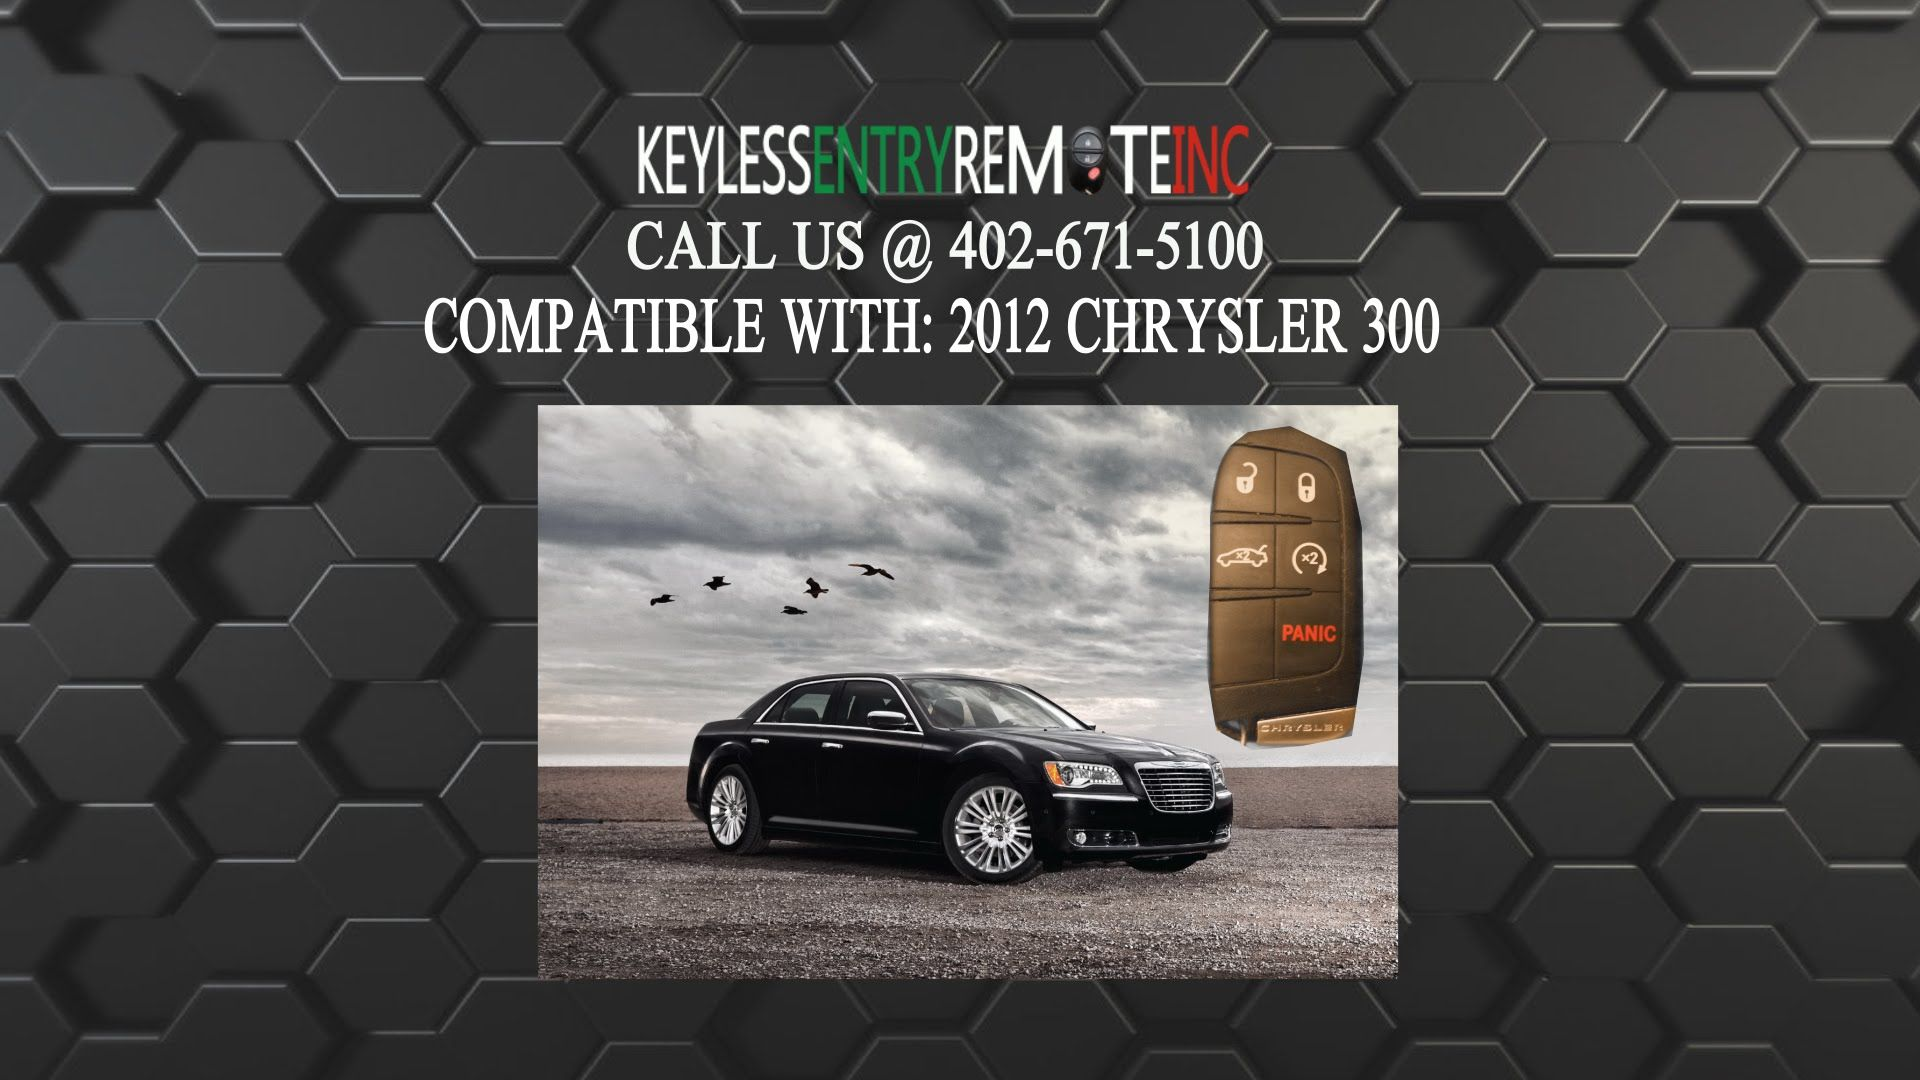 How To Replace Chrysler 300 Key Fob Battery 2012 Chrysler 300